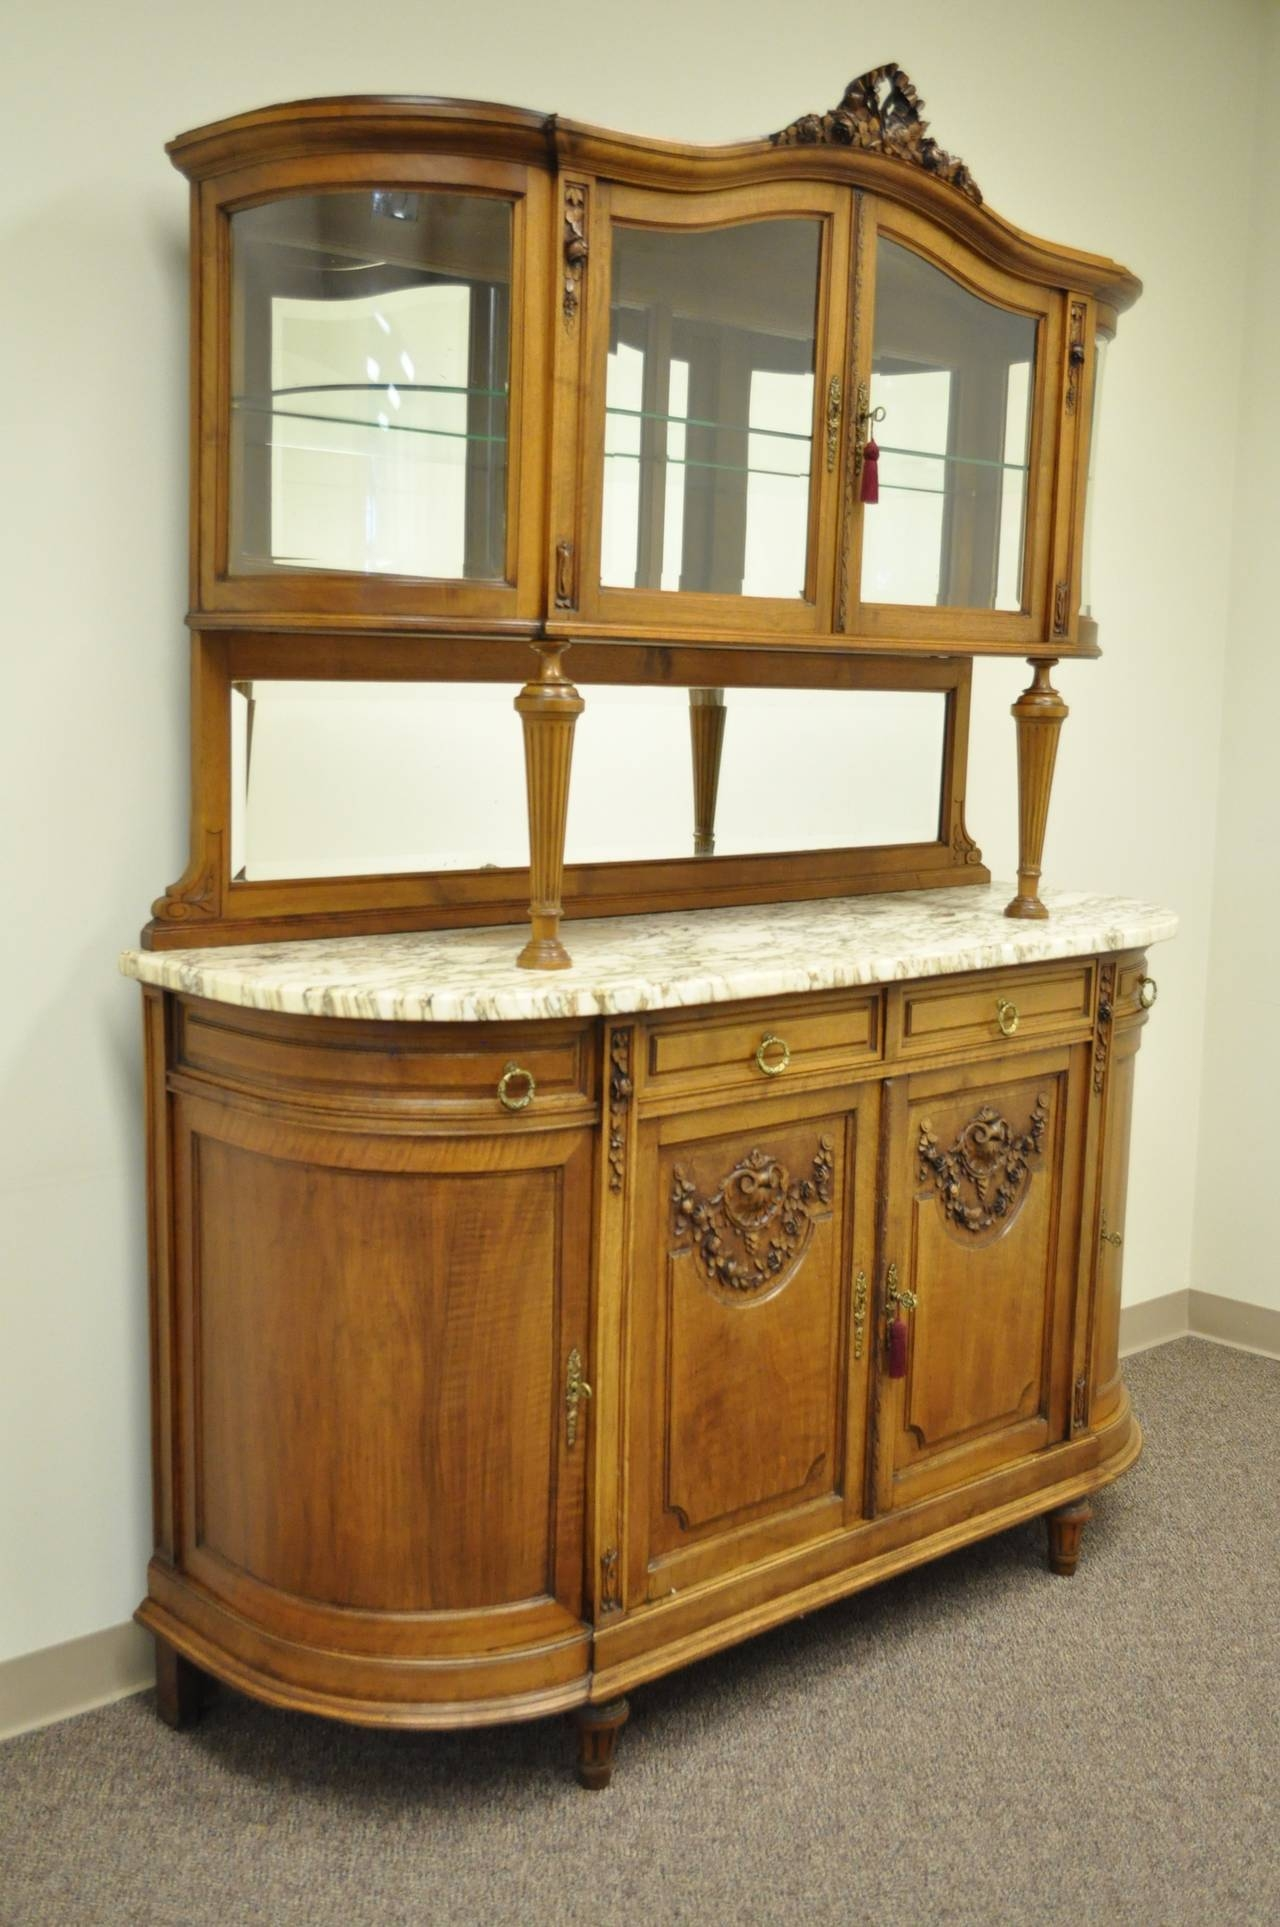 French Louis Xvi Style Marble-Top Sideboard Or Curio Cabinet with regard to Sideboards With Marble Tops (Image 6 of 15)